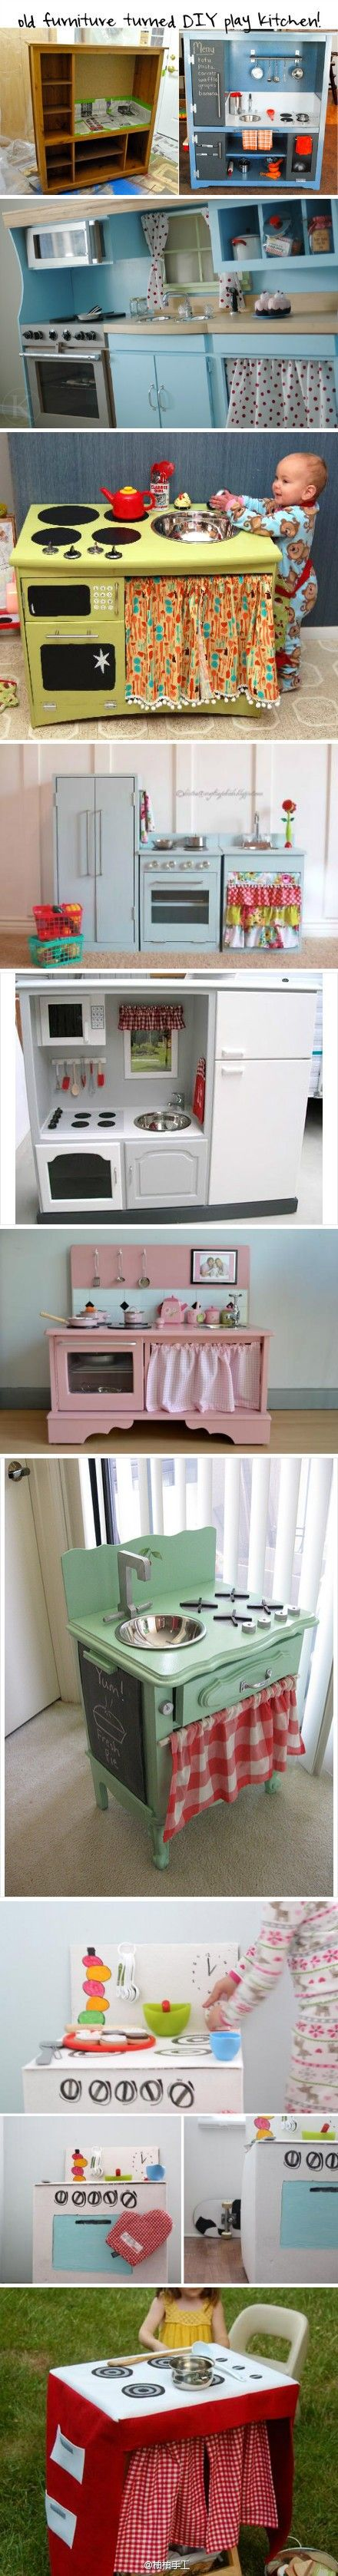 97 best images about old made new play kitchens on